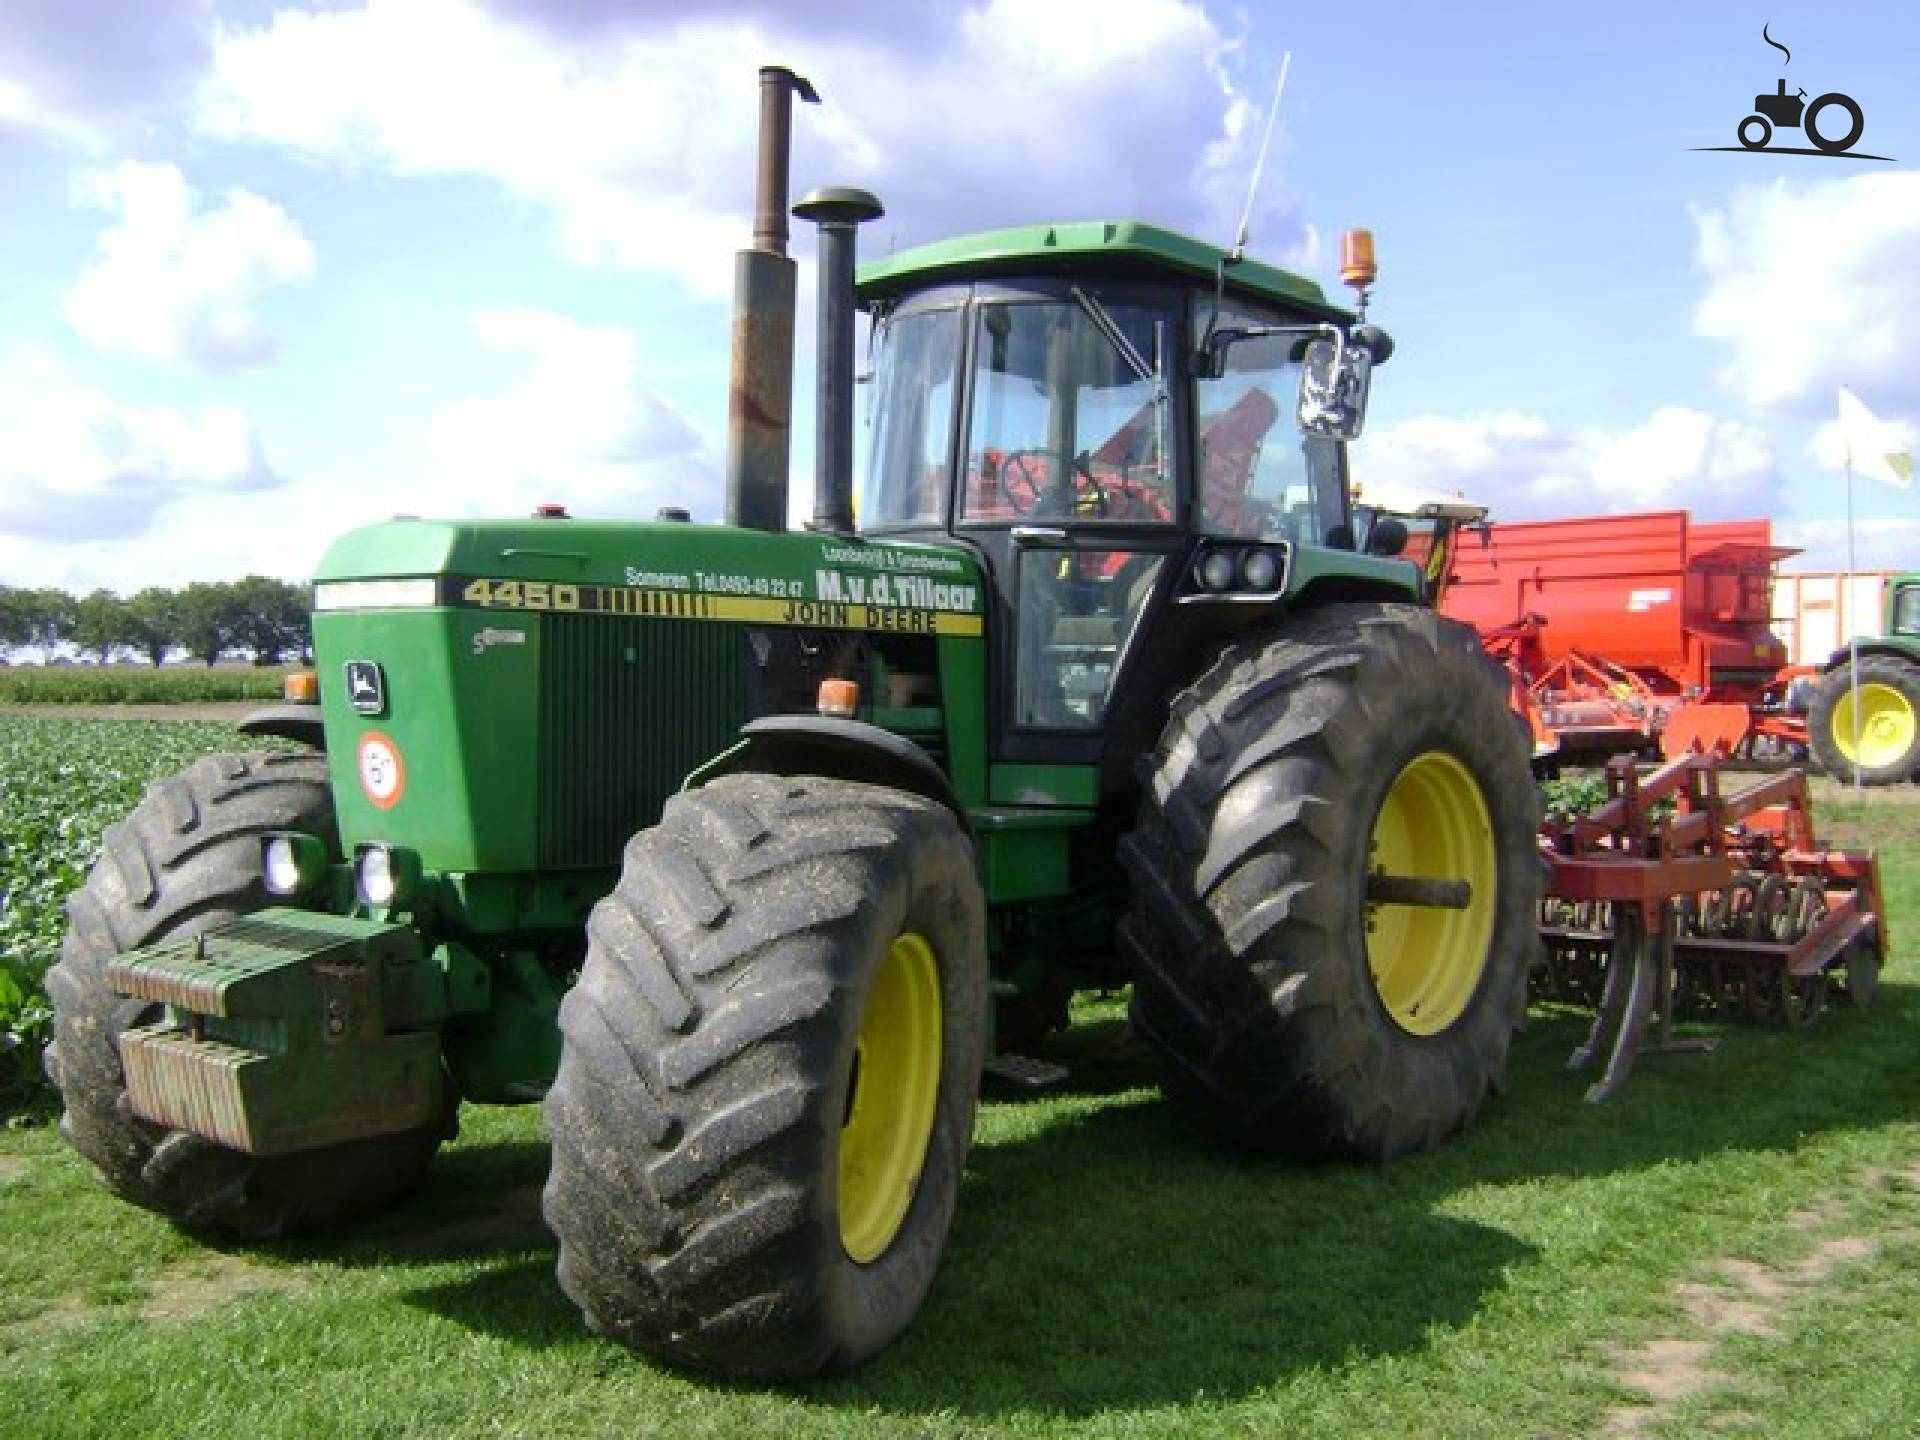 John Deere 4450 from casefahrer Busy with poseren.